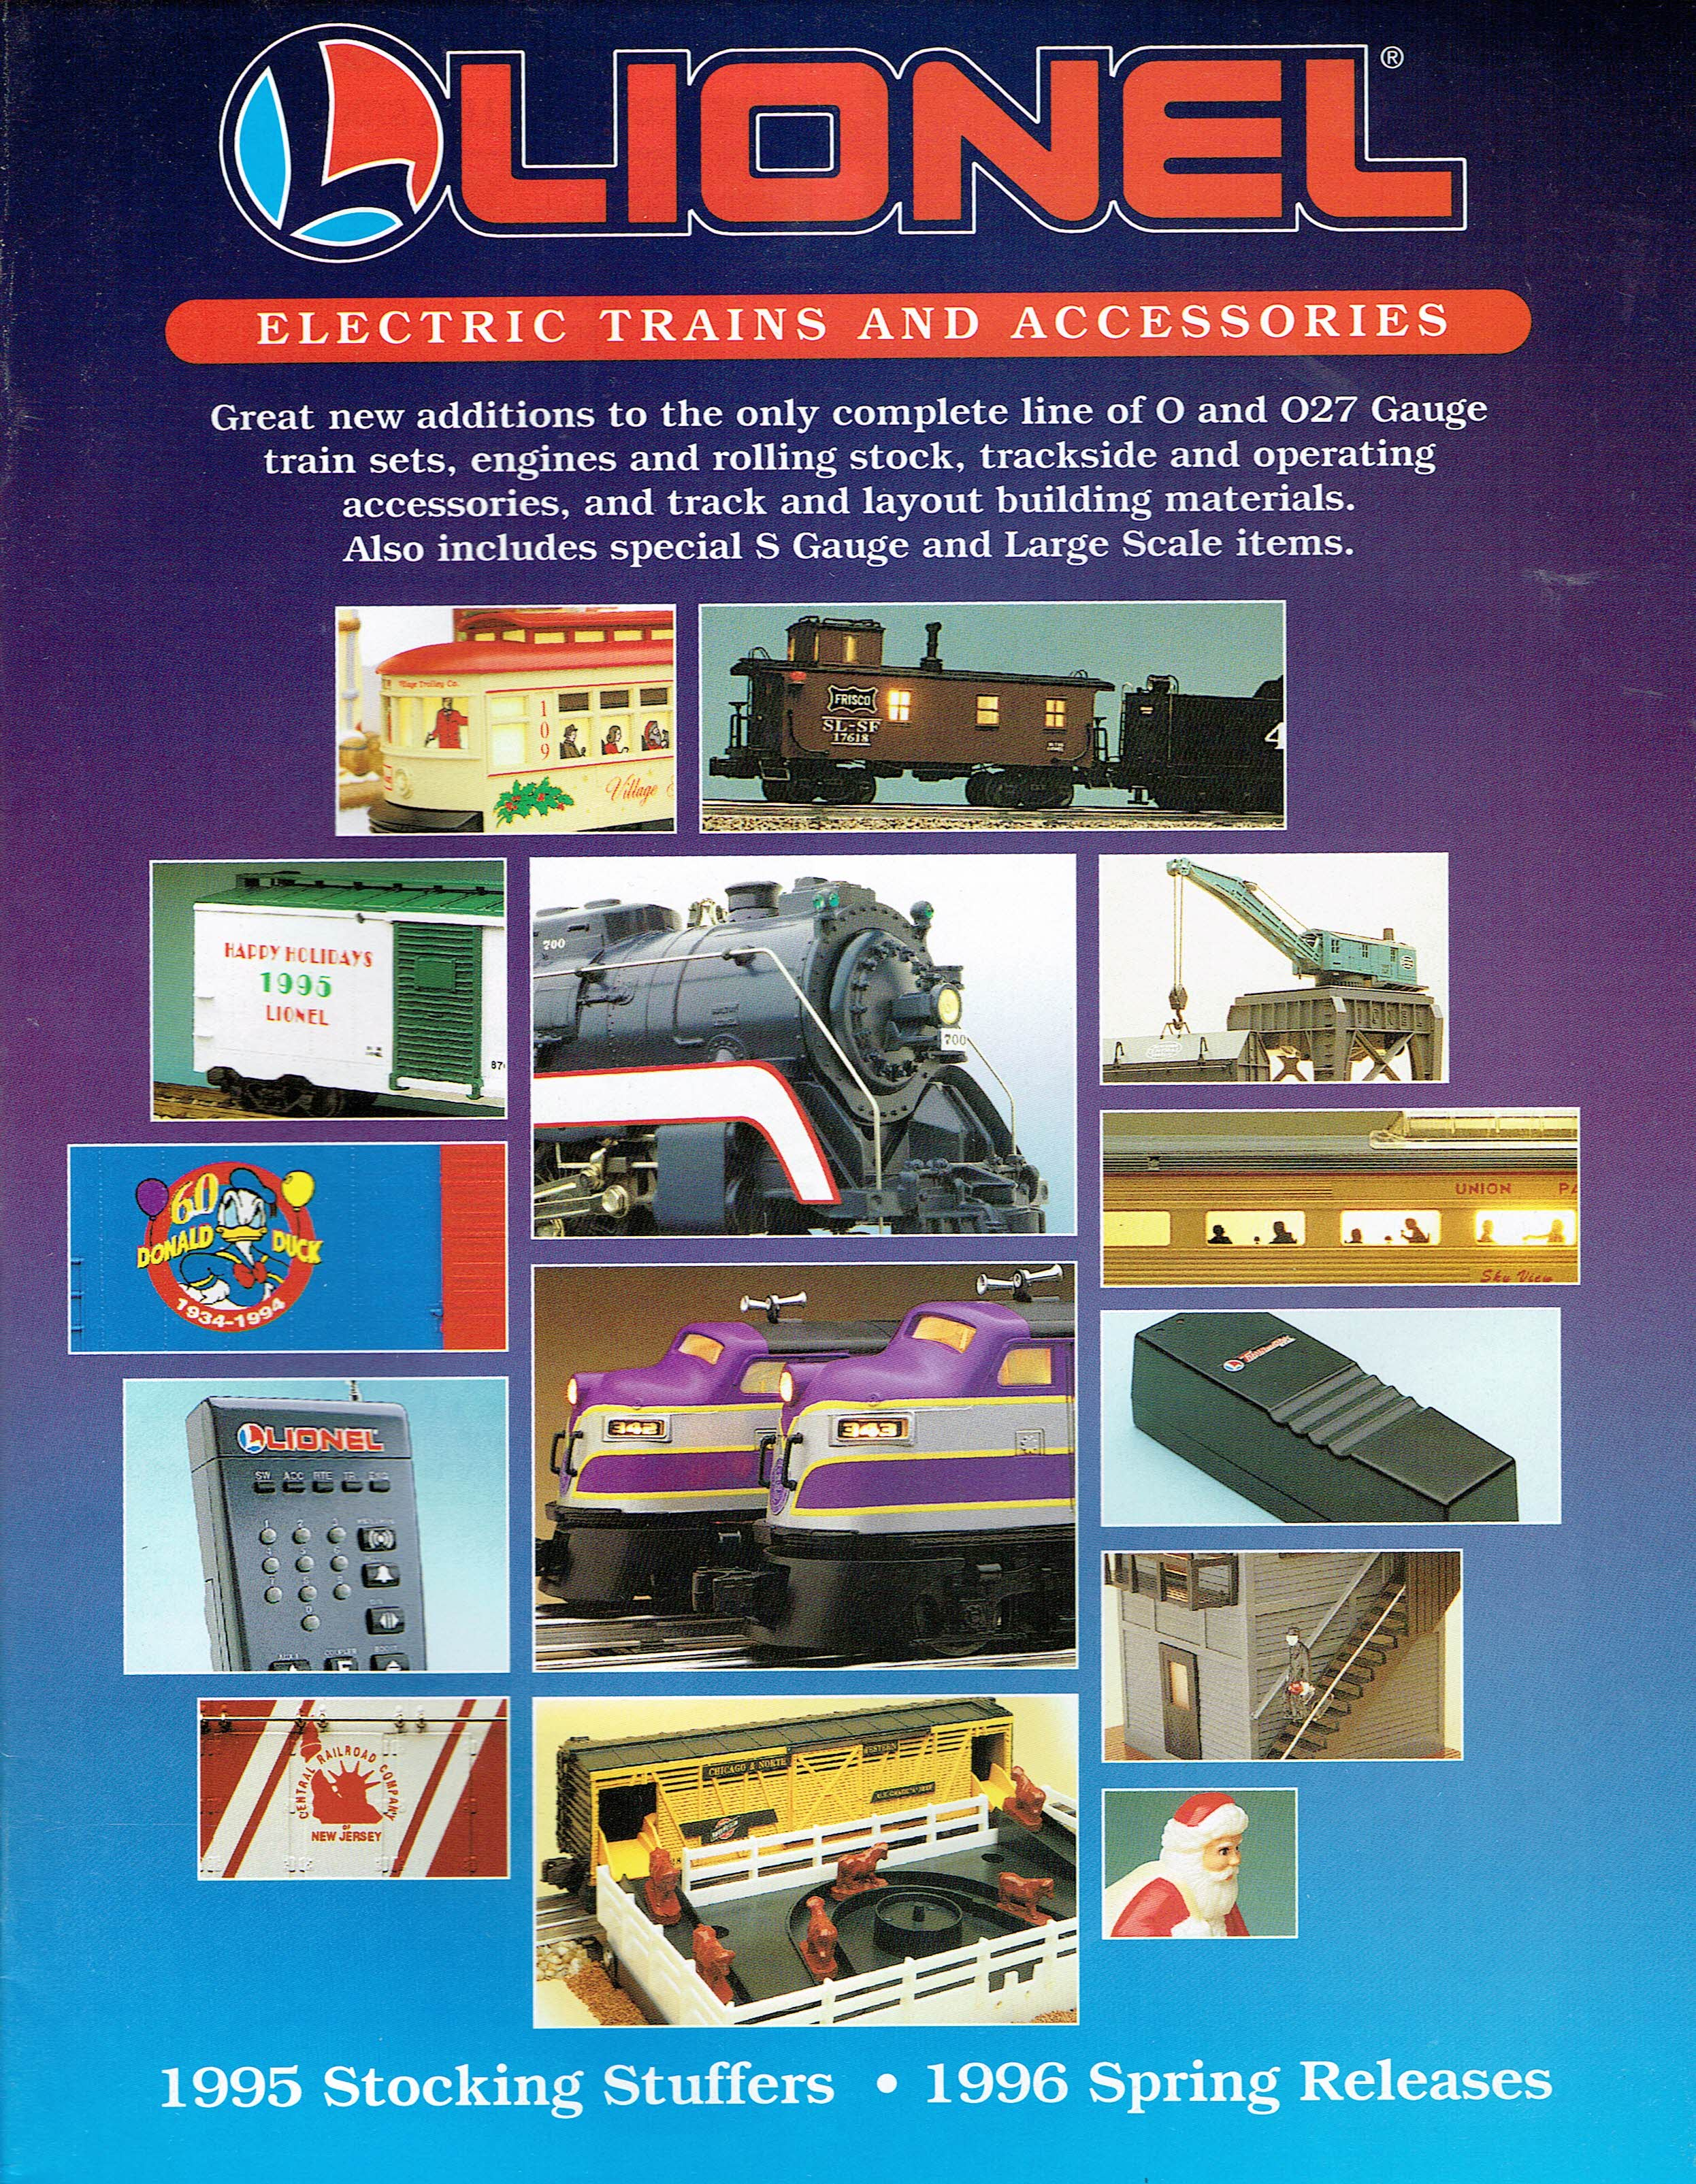 Lionel 1995 Stocking Stuffers / 1996 Spring Releases Catalog image